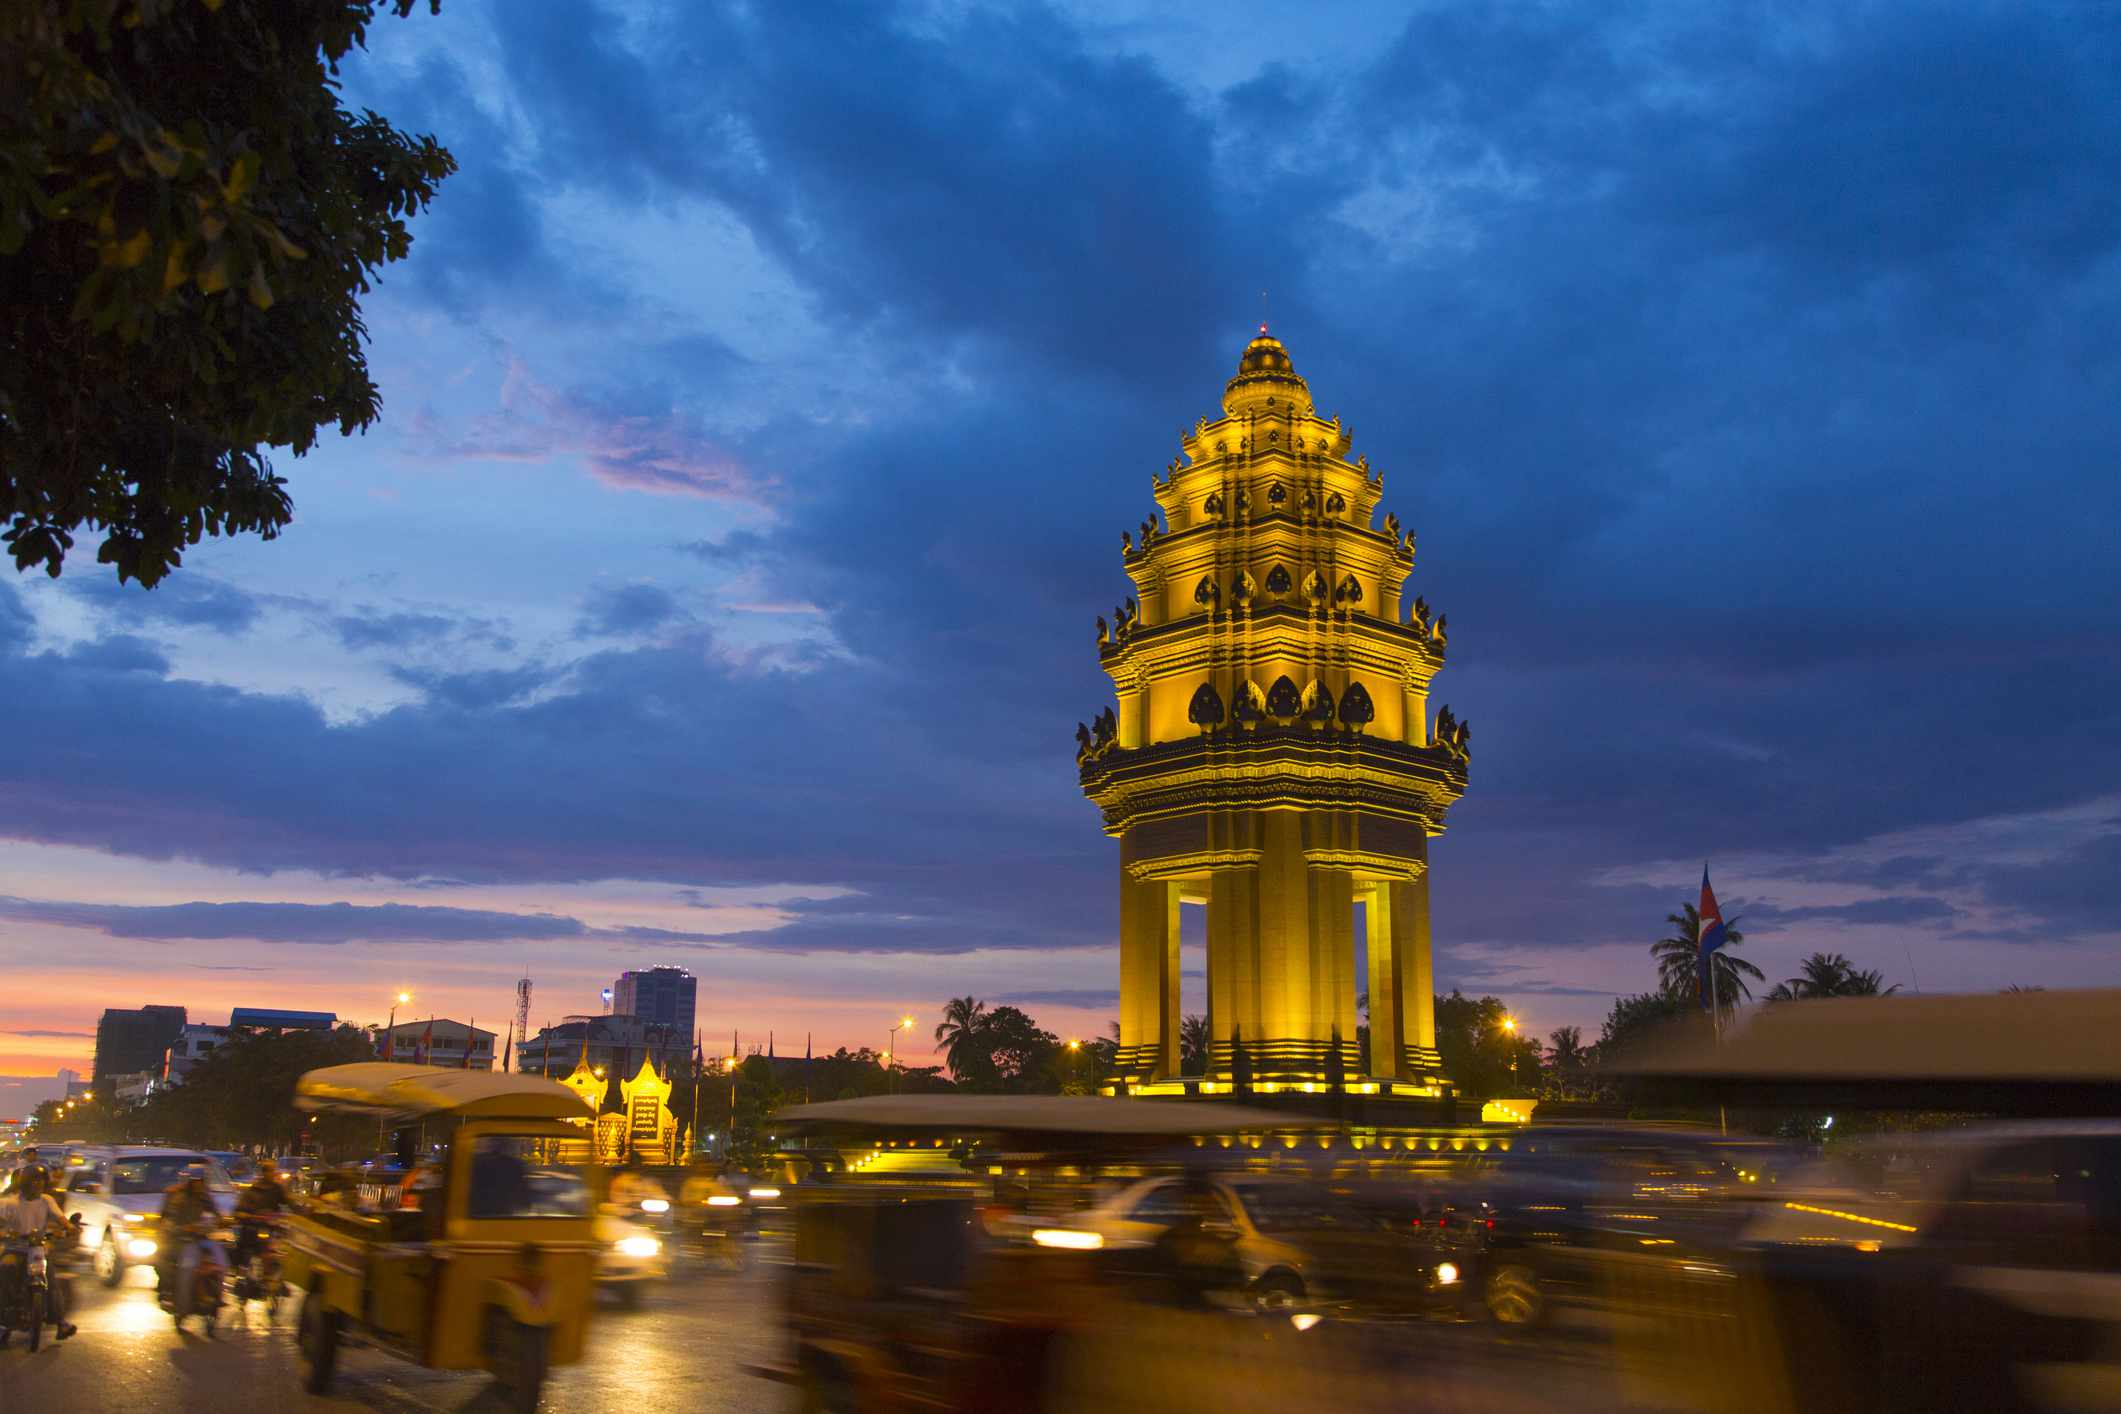 Sunset over Independence Monument, Phnom Penh